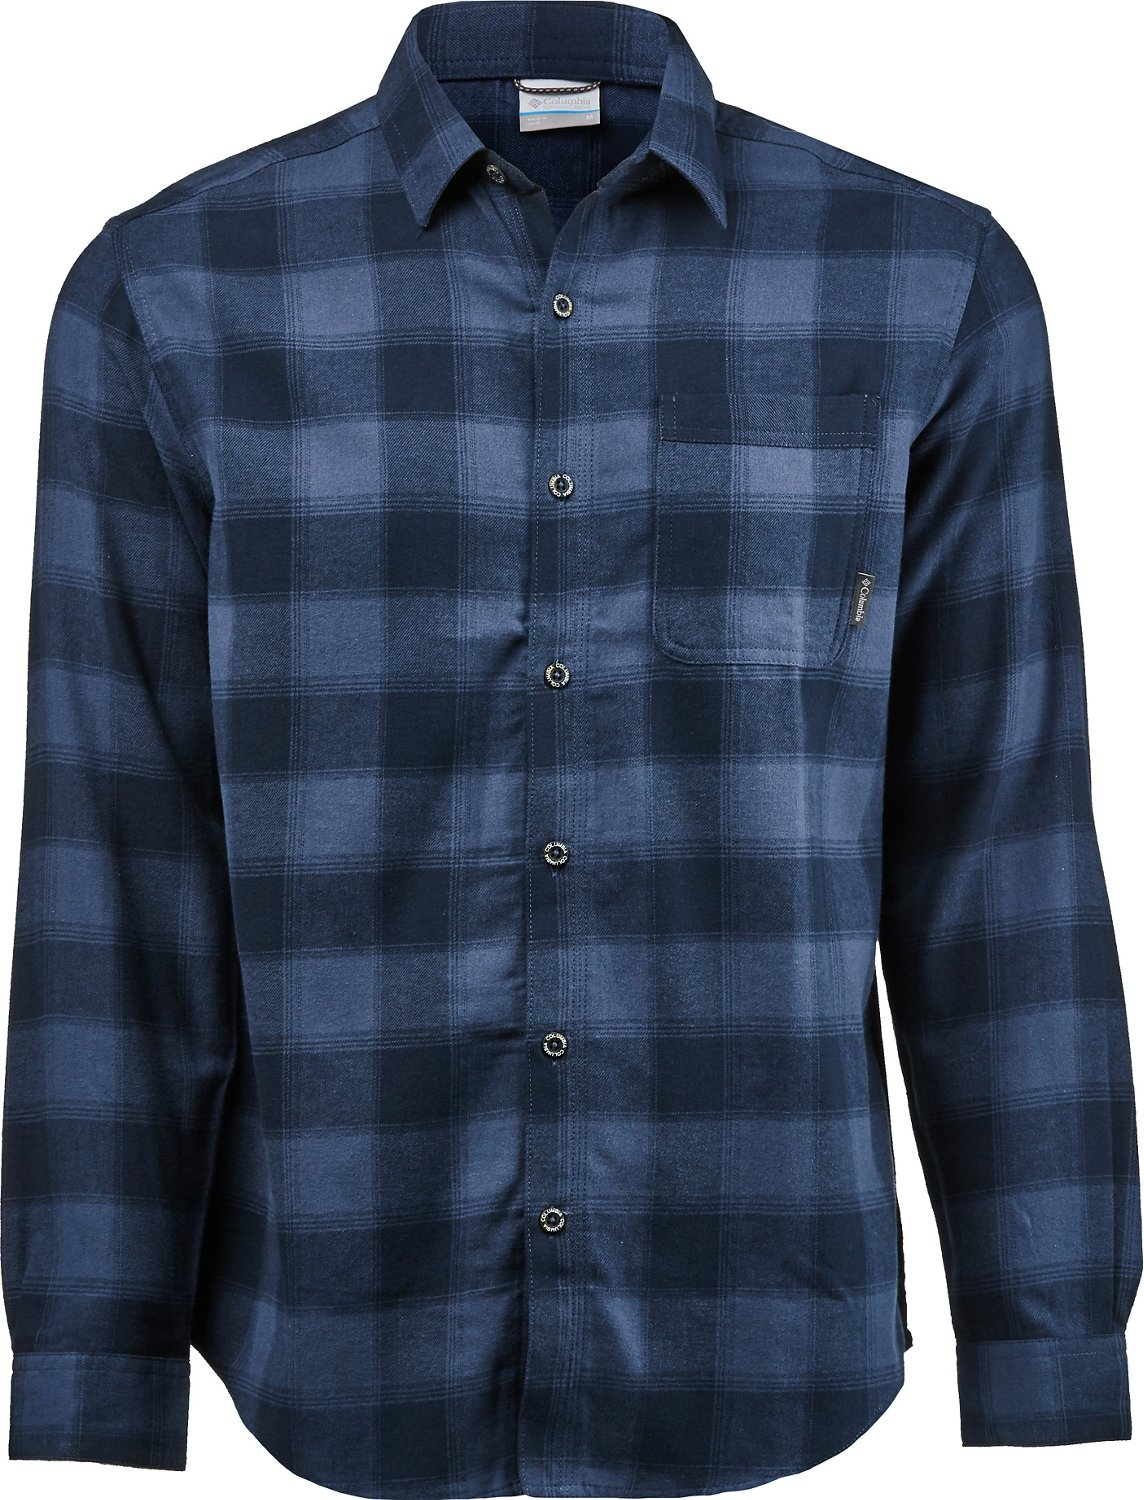 Mens Shirts Academy